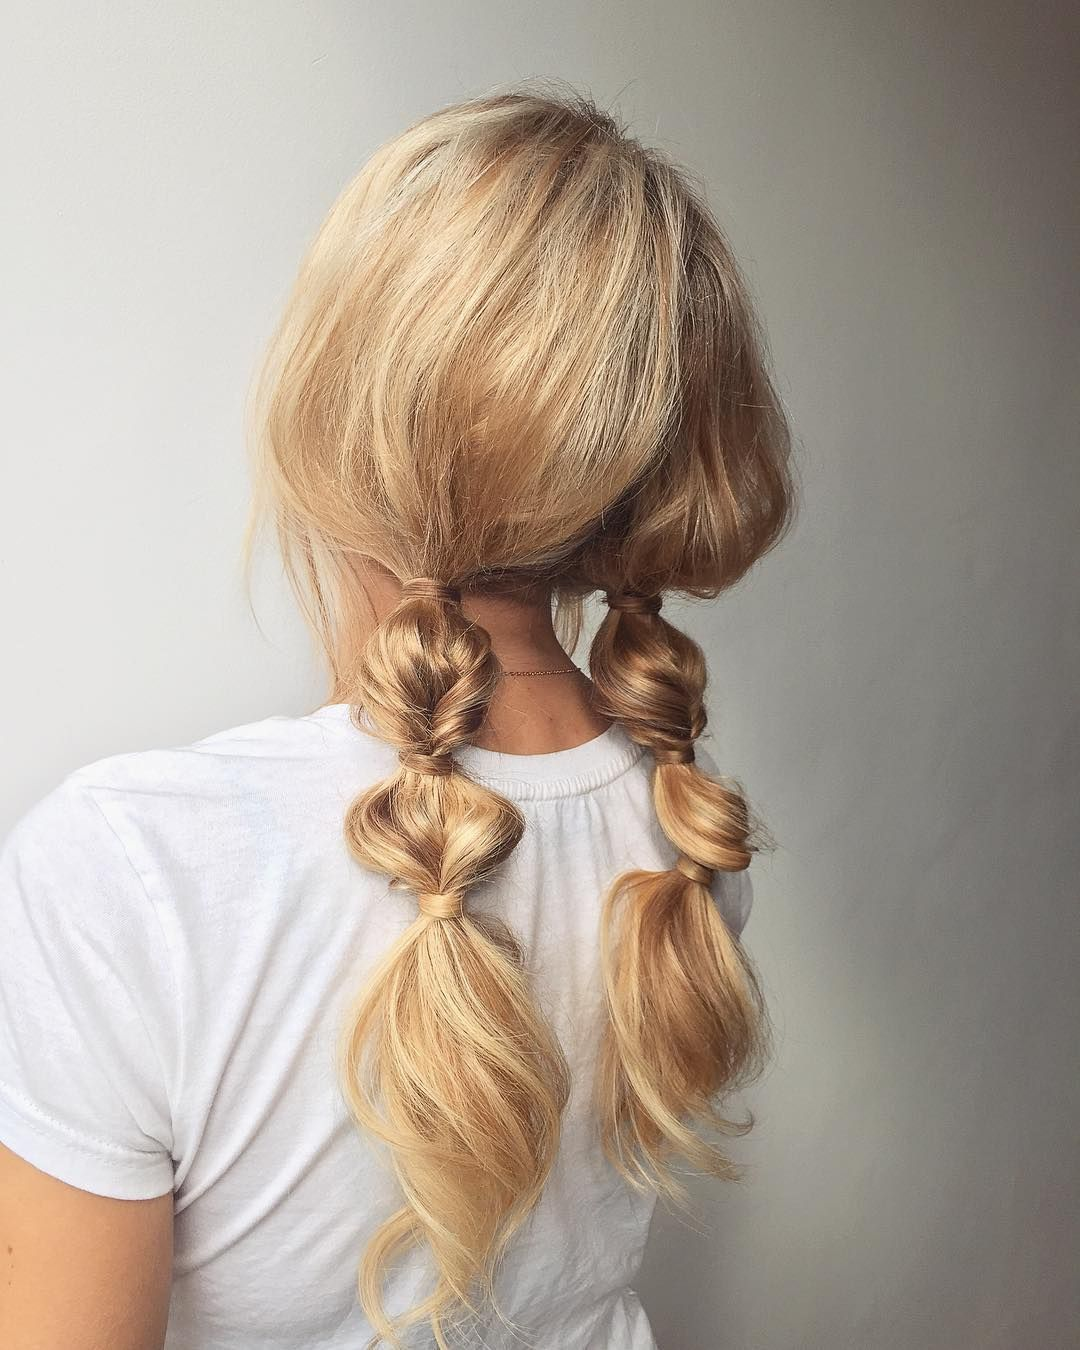 Bubble Braided Pigtails Hairstyle Inspiration Braid Hairstyle Braided Ponytails Braids Hairstyle Br Pigtail Braids Hair Styles Braided Hairstyles Easy